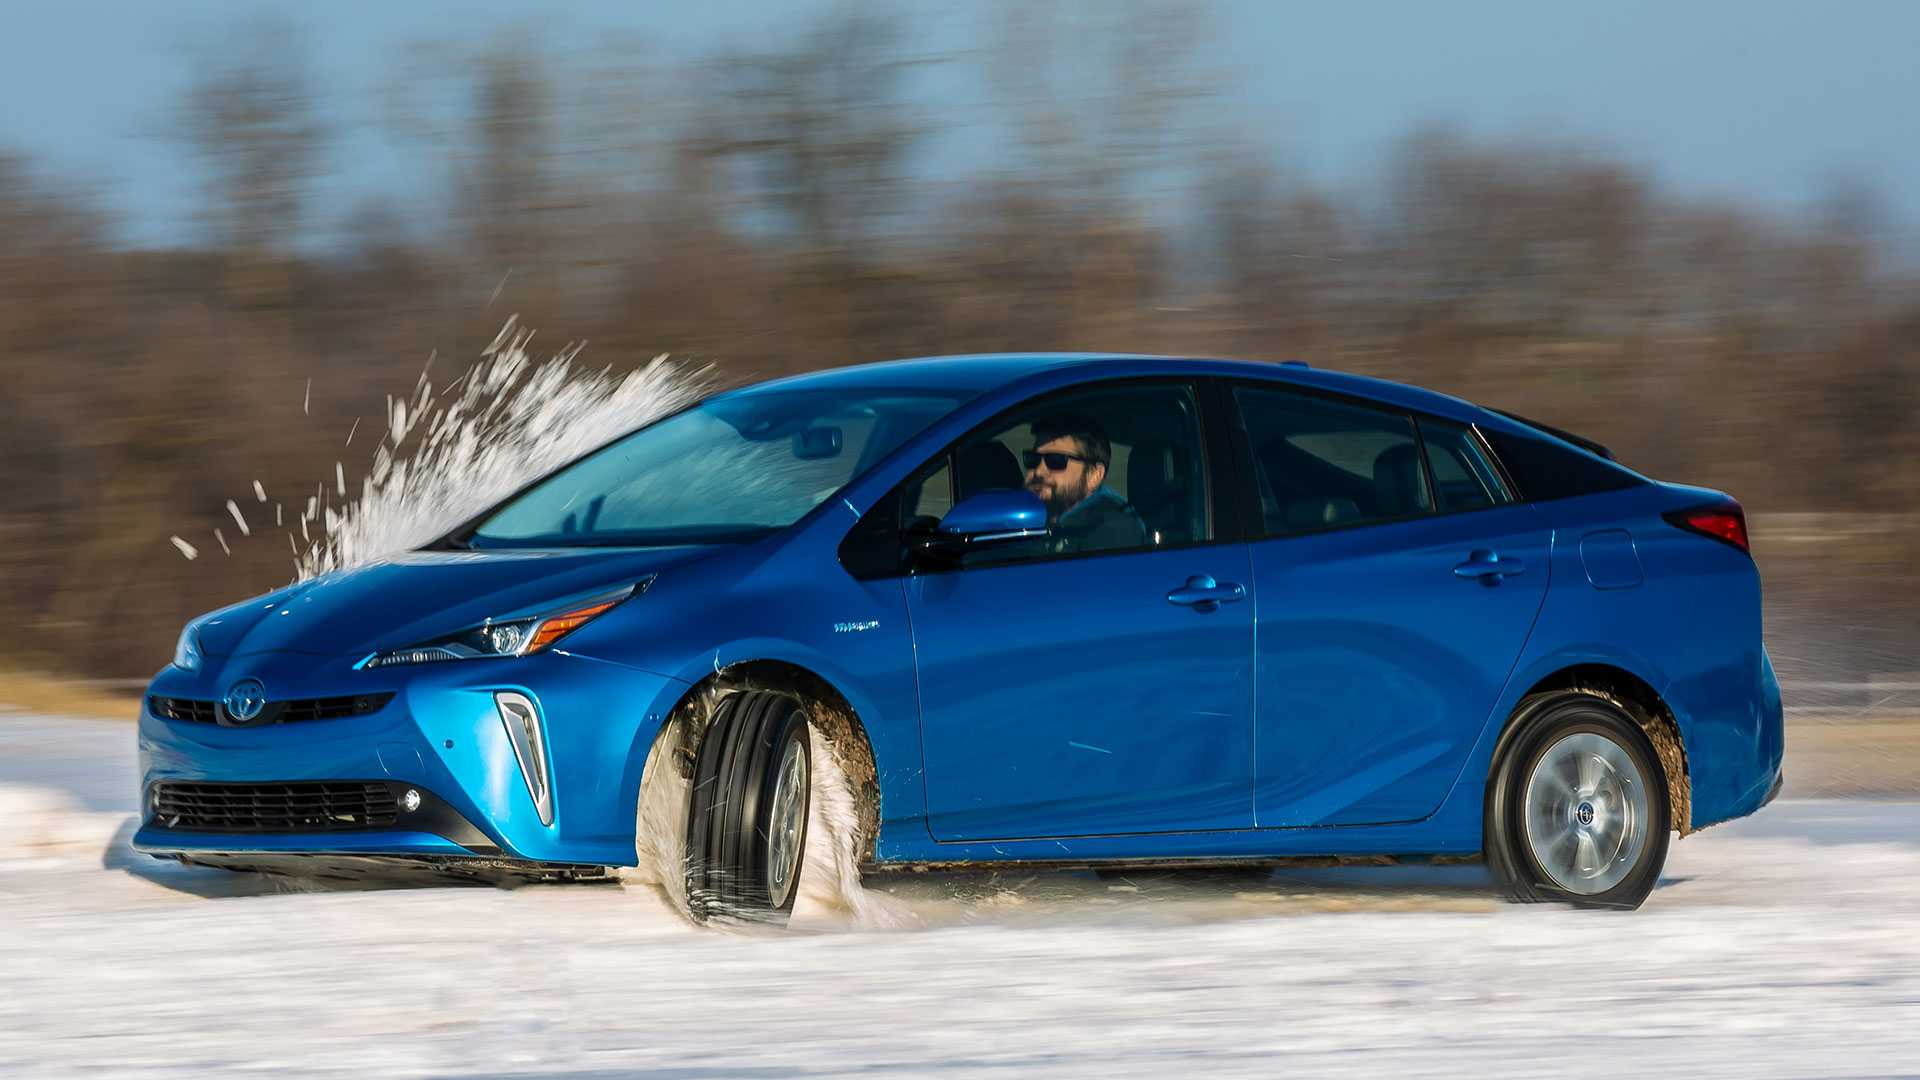 90 Concept of 2019 Toyota Prius Speed Test with 2019 Toyota Prius